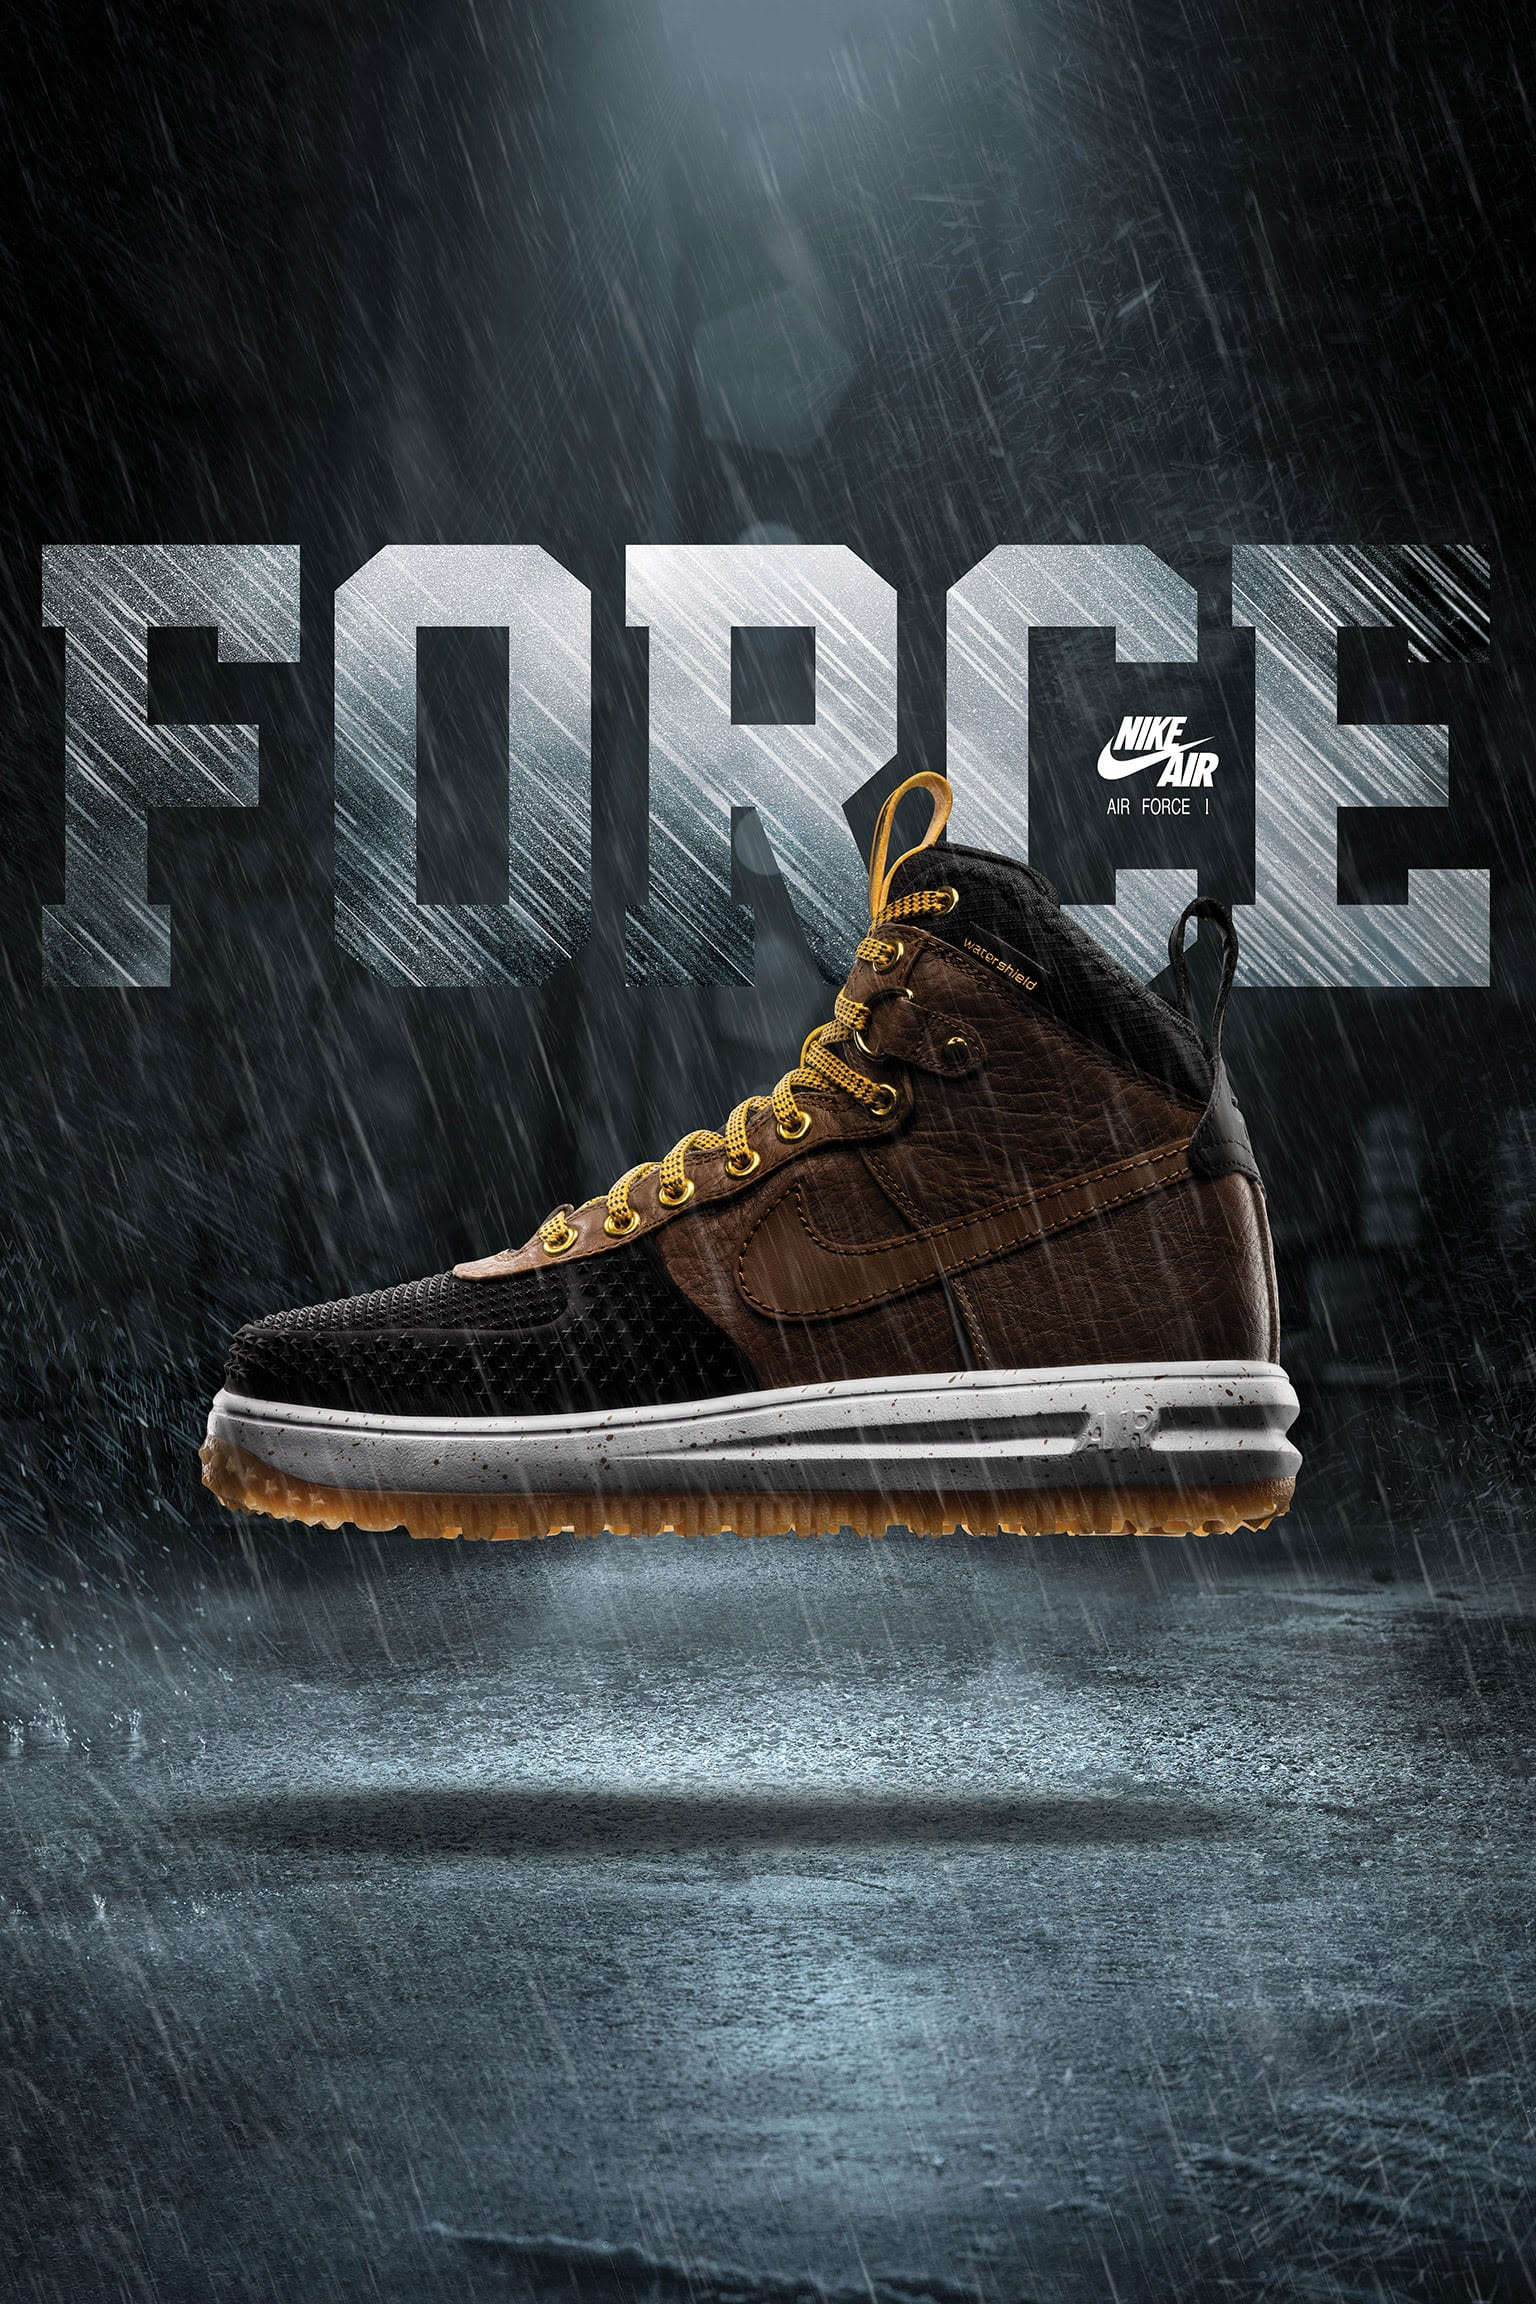 Nike Lunar Force 1 Duckboot 'Black & Light British Tan'